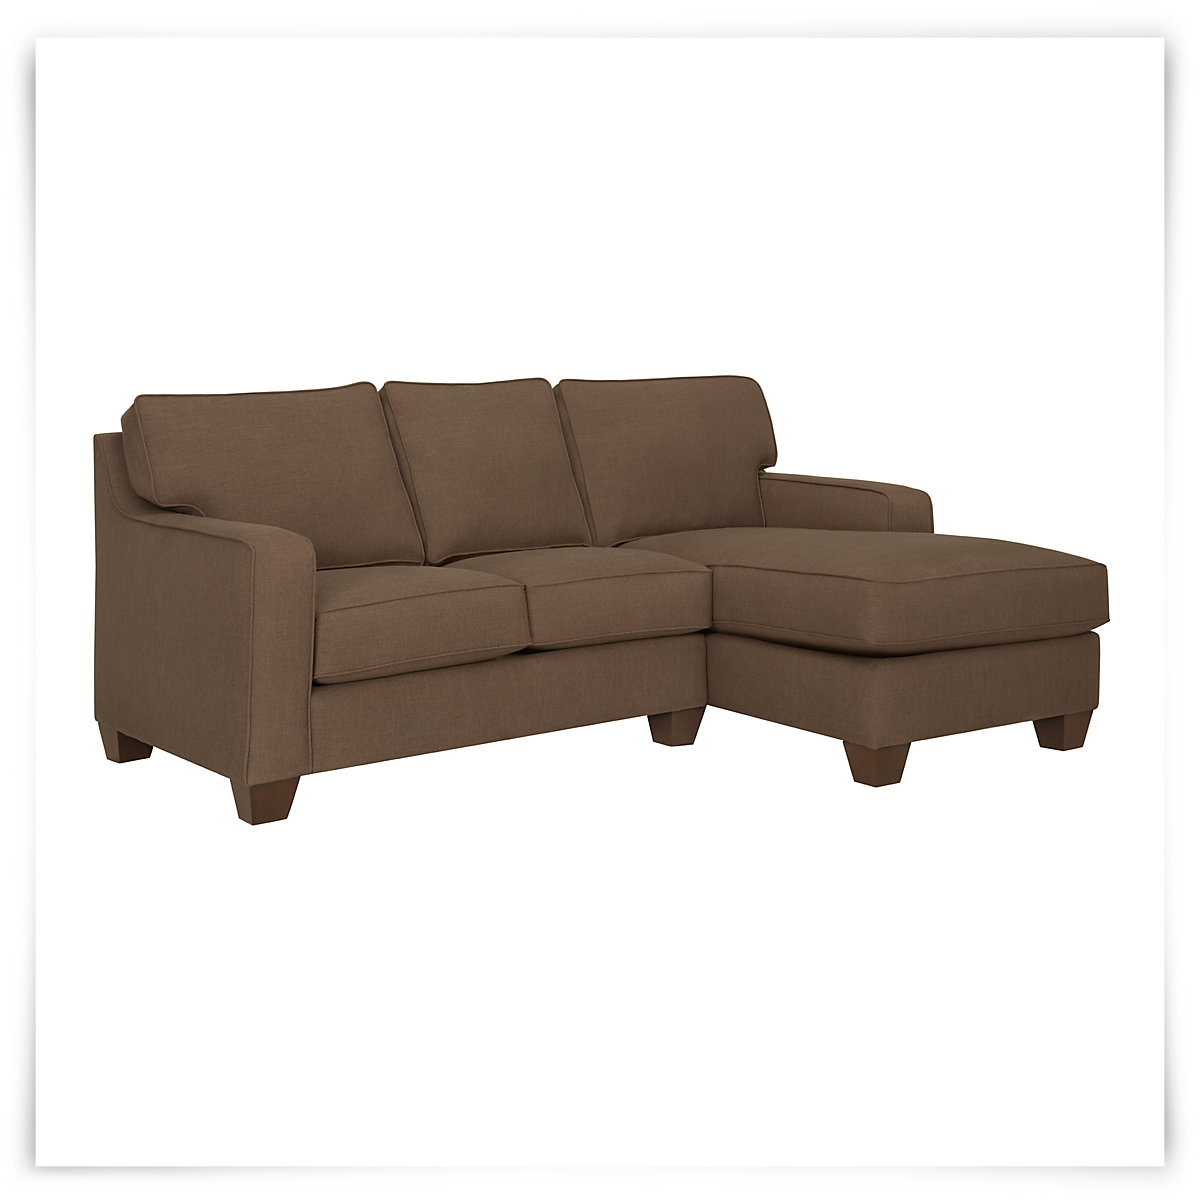 City furniture york dk brown fabric small right chaise for Chaise york